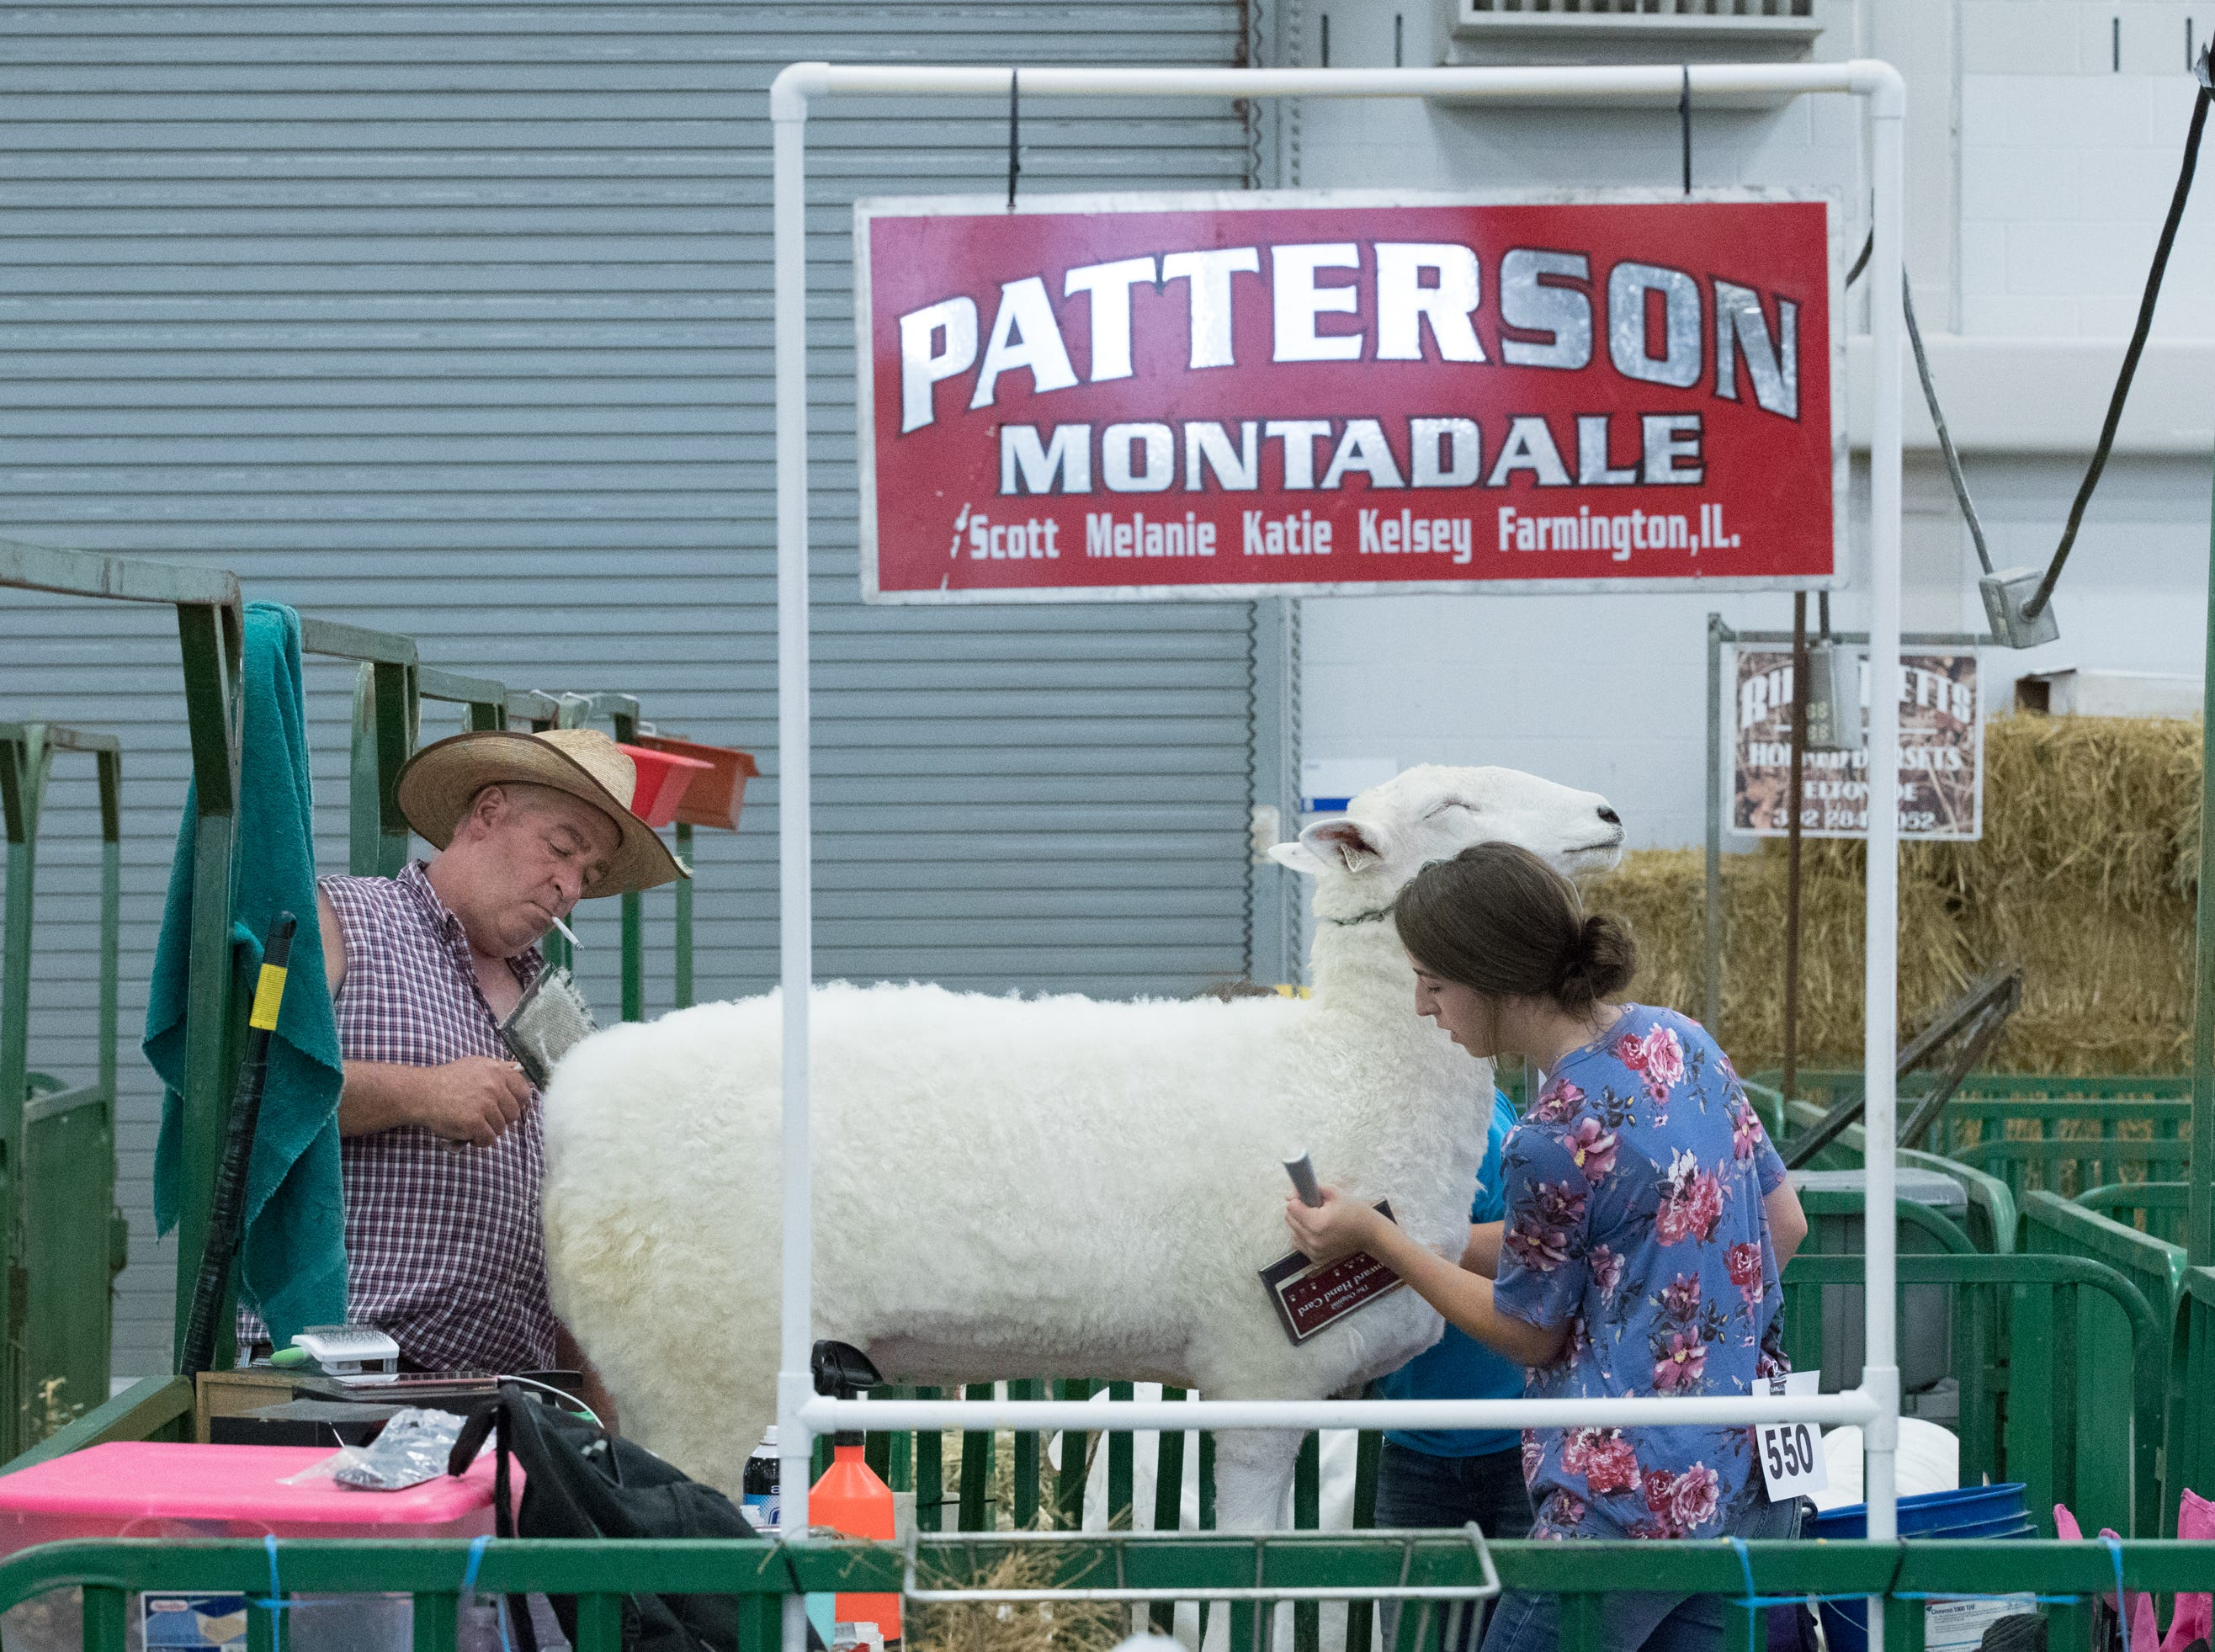 Scott and Katie Patterson card their sheep during the 25th anniversary All American Jr. Sheep Show at the Indiana State Fairgrounds on Friday, July 6, 2018. Carding is a fluffing of the sheep's wool.